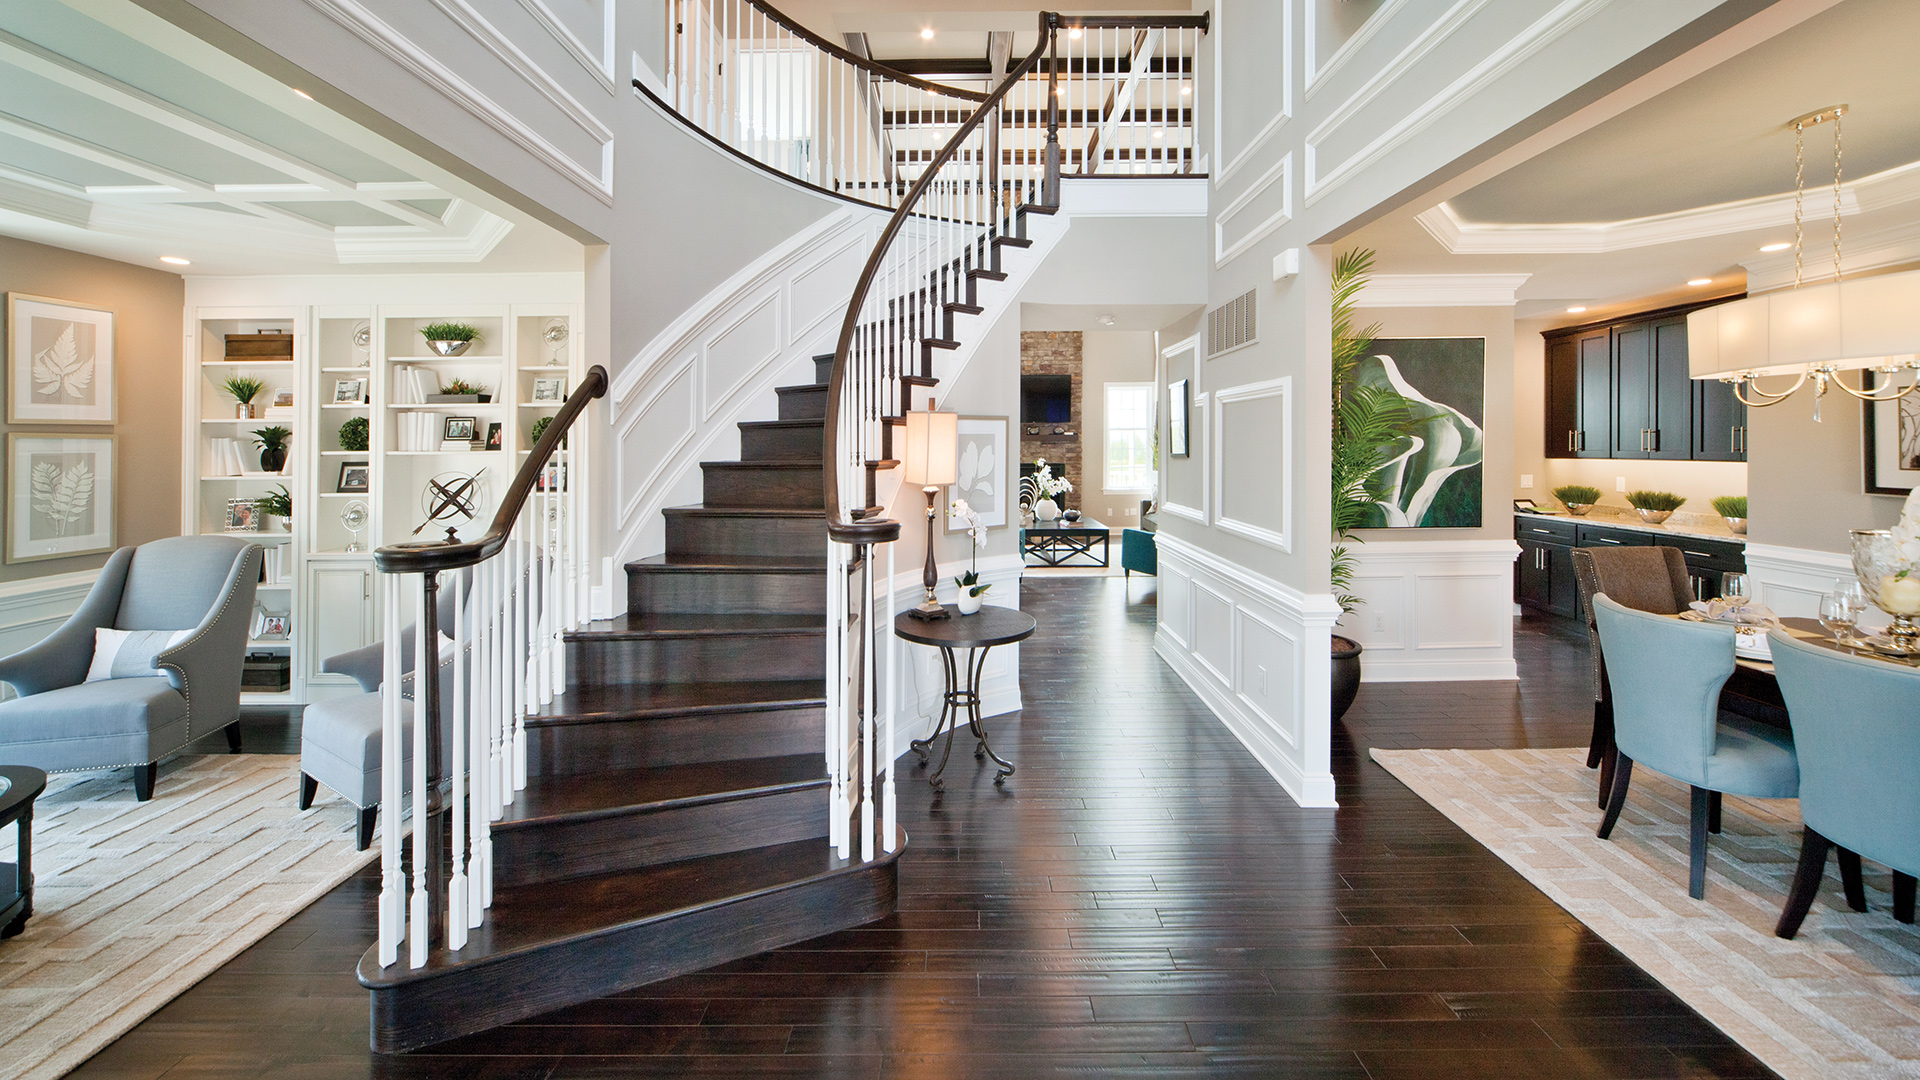 Dramatic two-story entry foyers